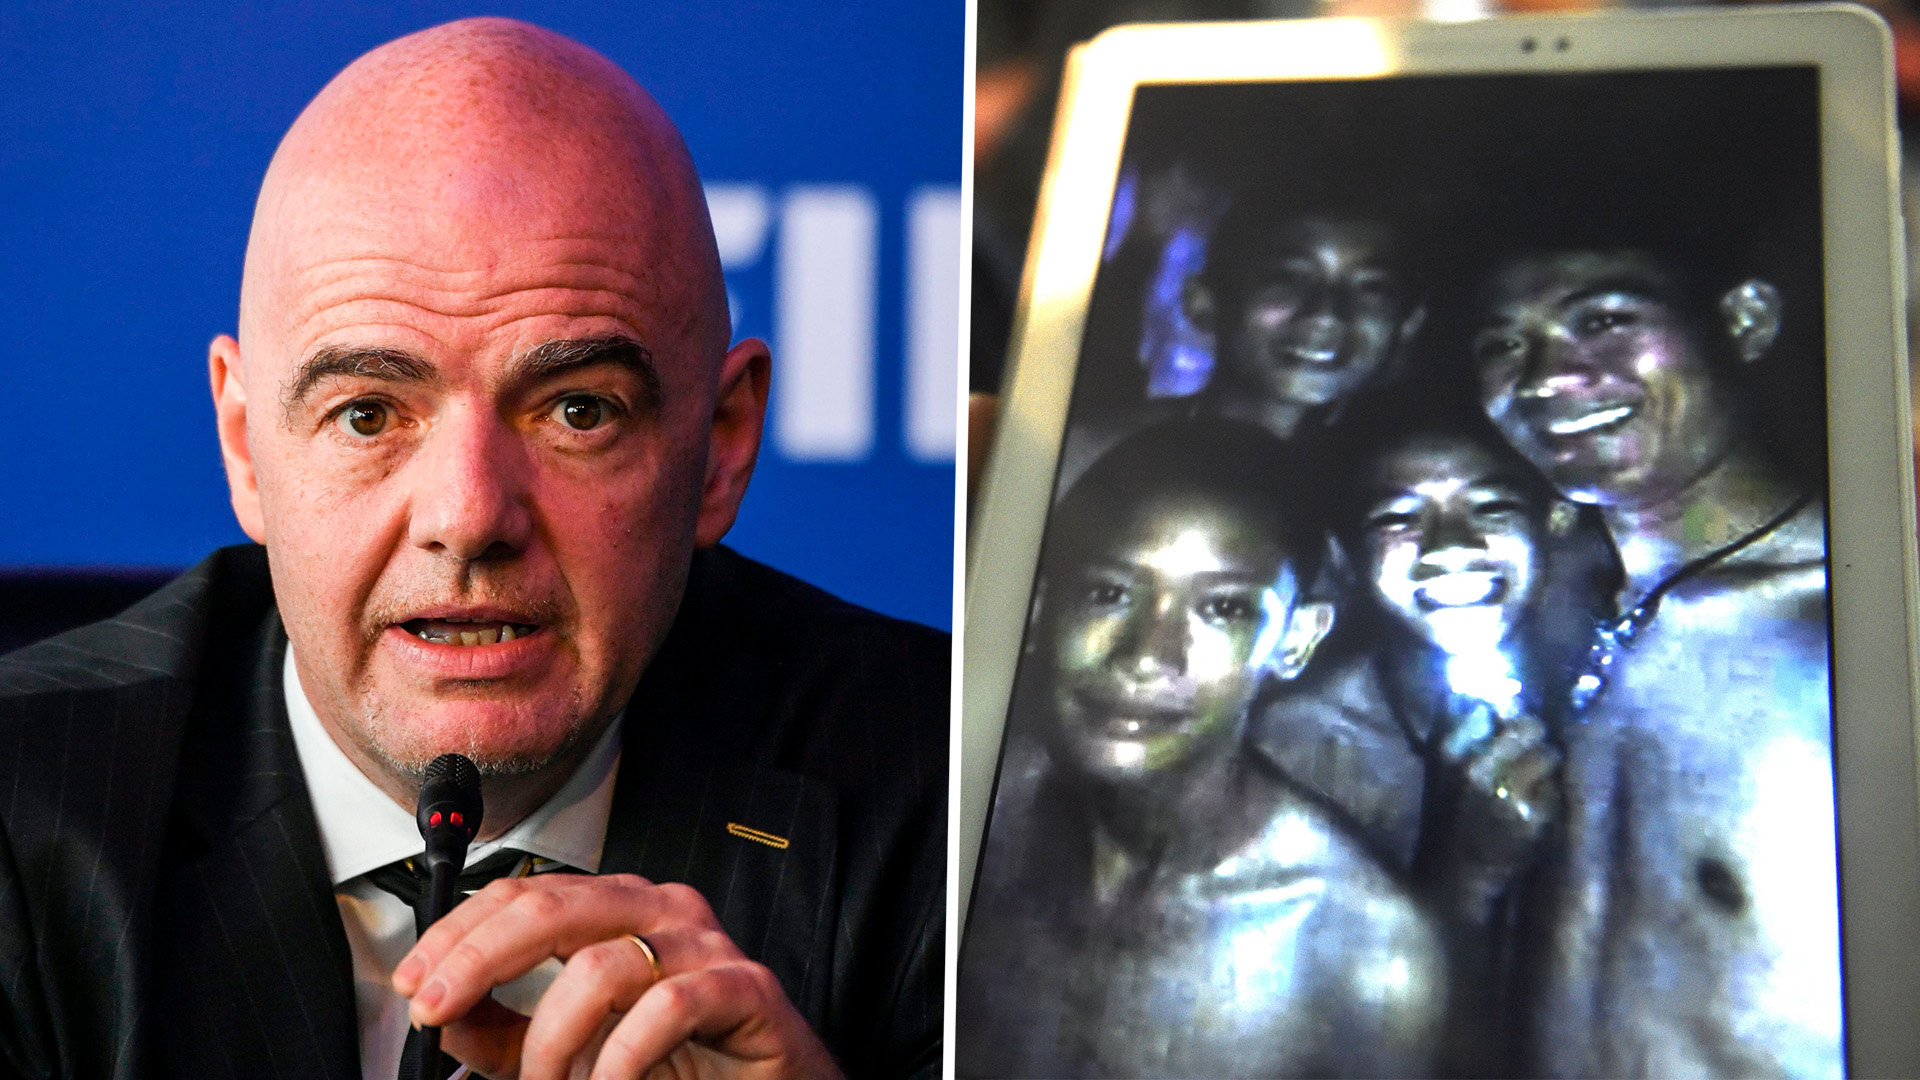 Thai cave rescue: FIFA president Infantino invites boys to World Cup final